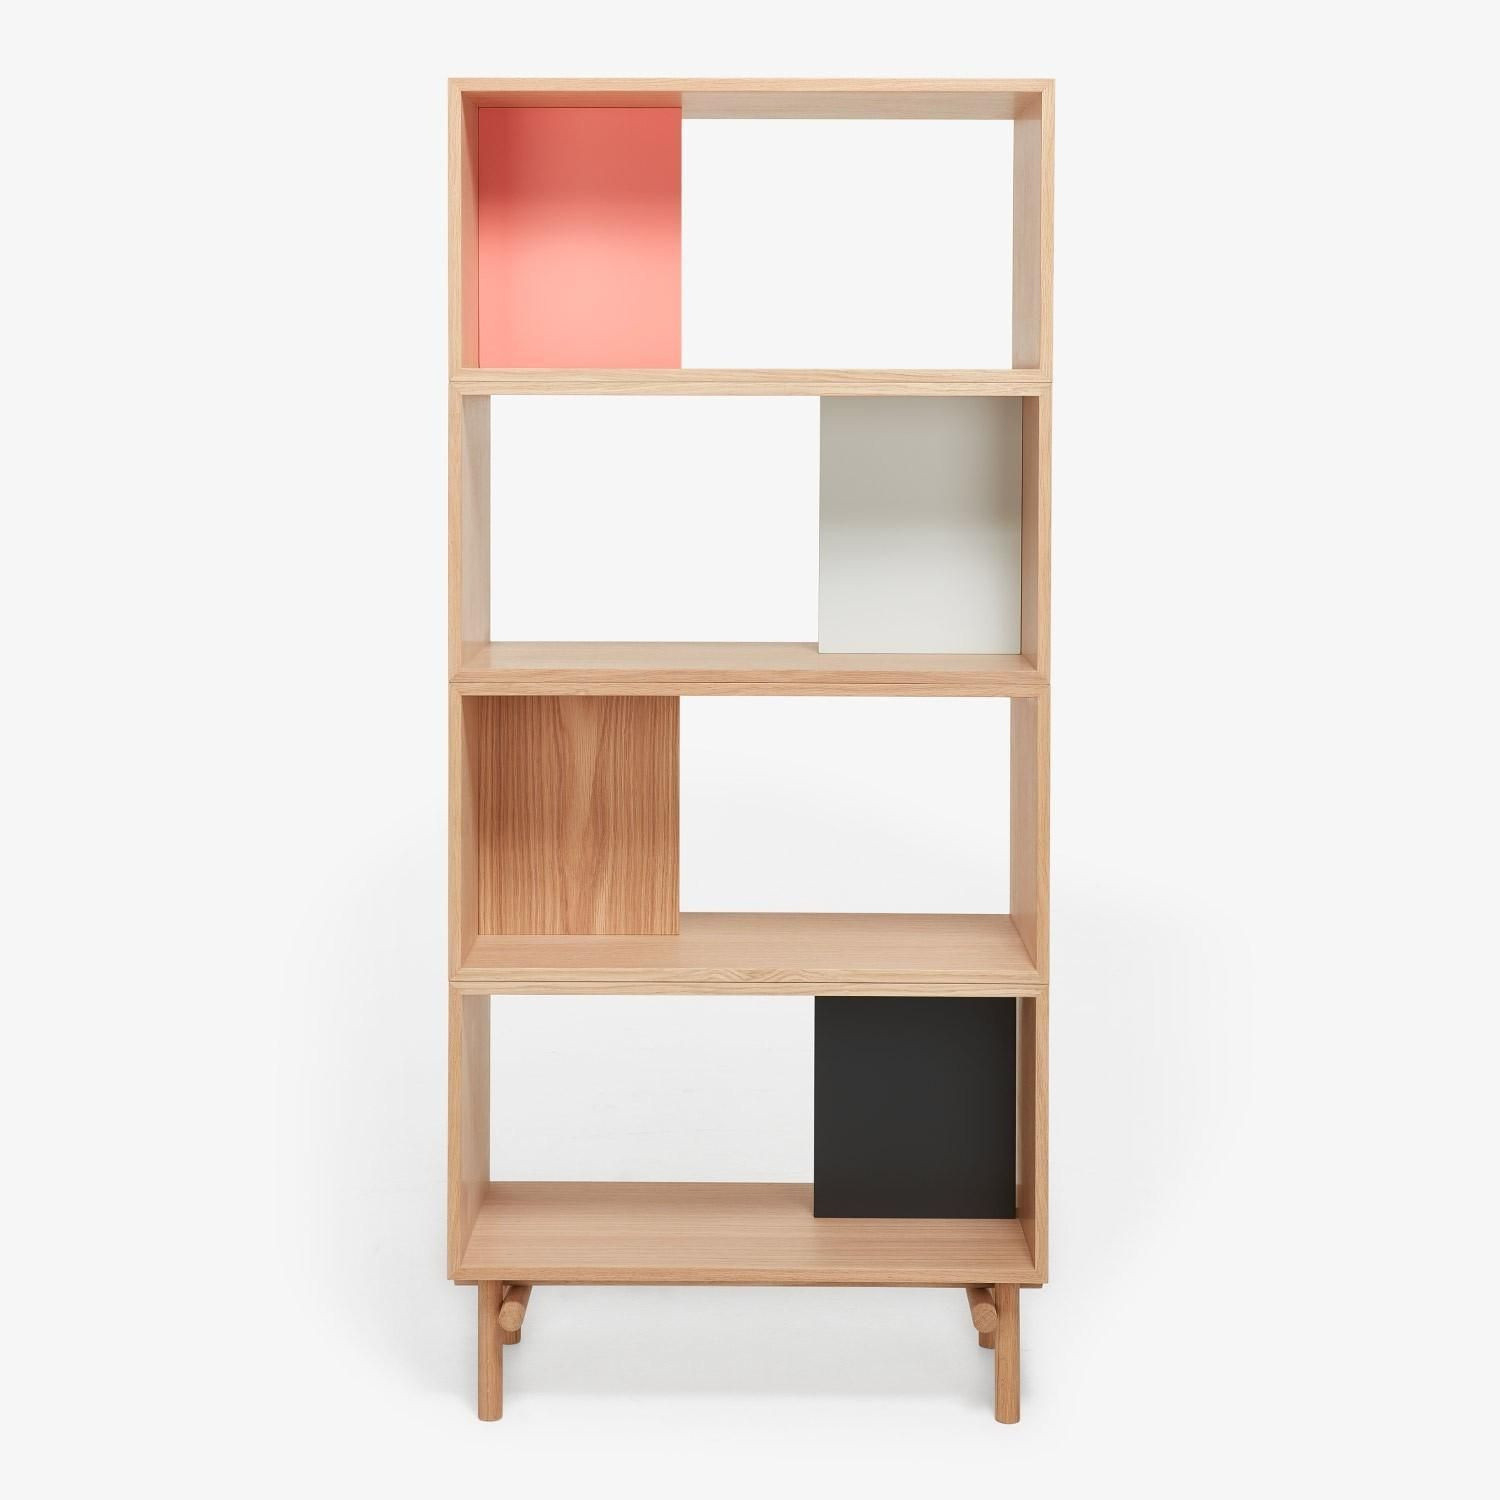 Cubist Shelving Unit #Homesecuritysystemnest